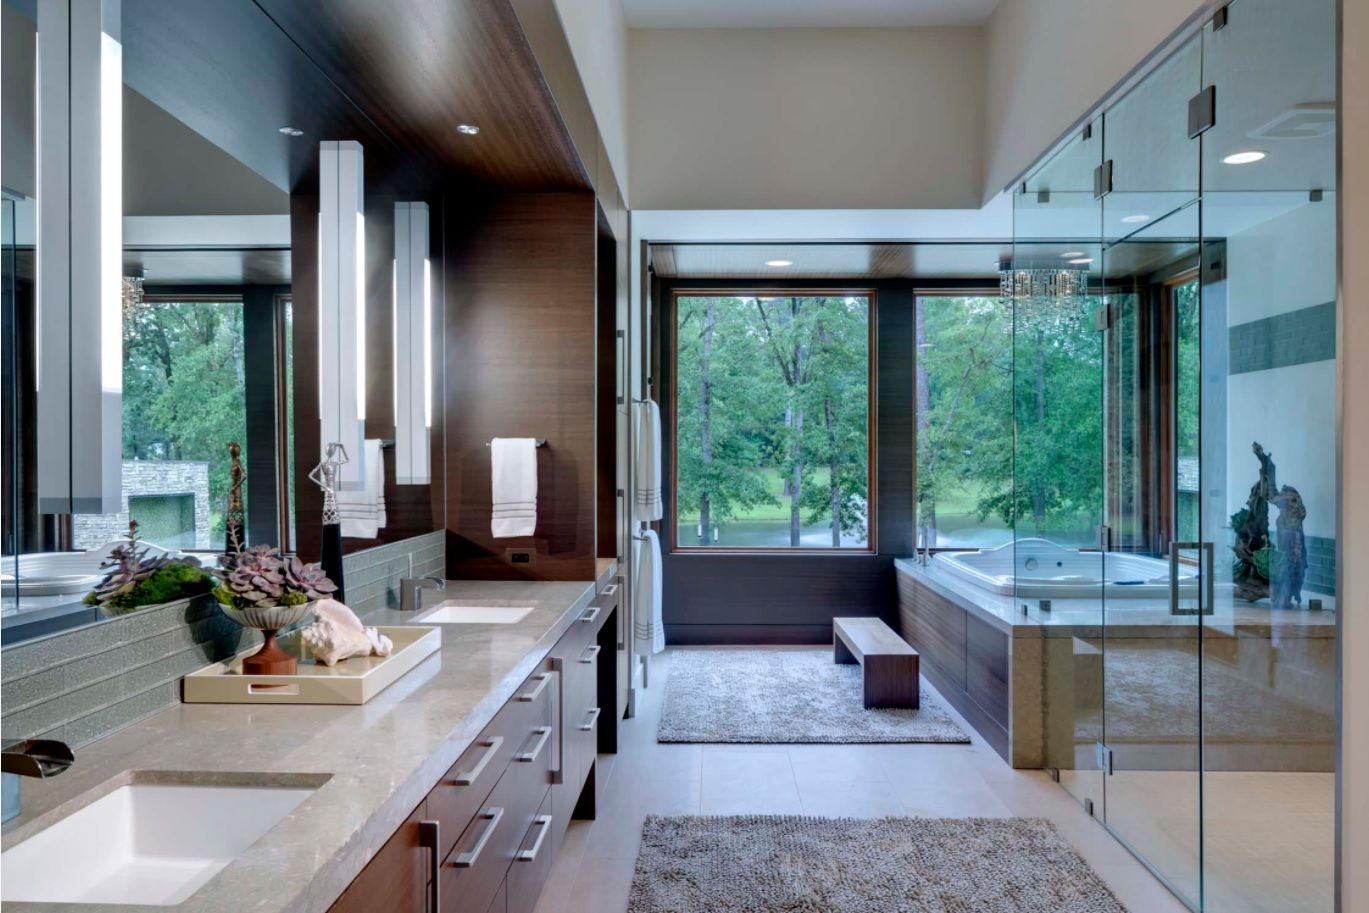 Casual modern stylistic for the spacious bathroom with large window